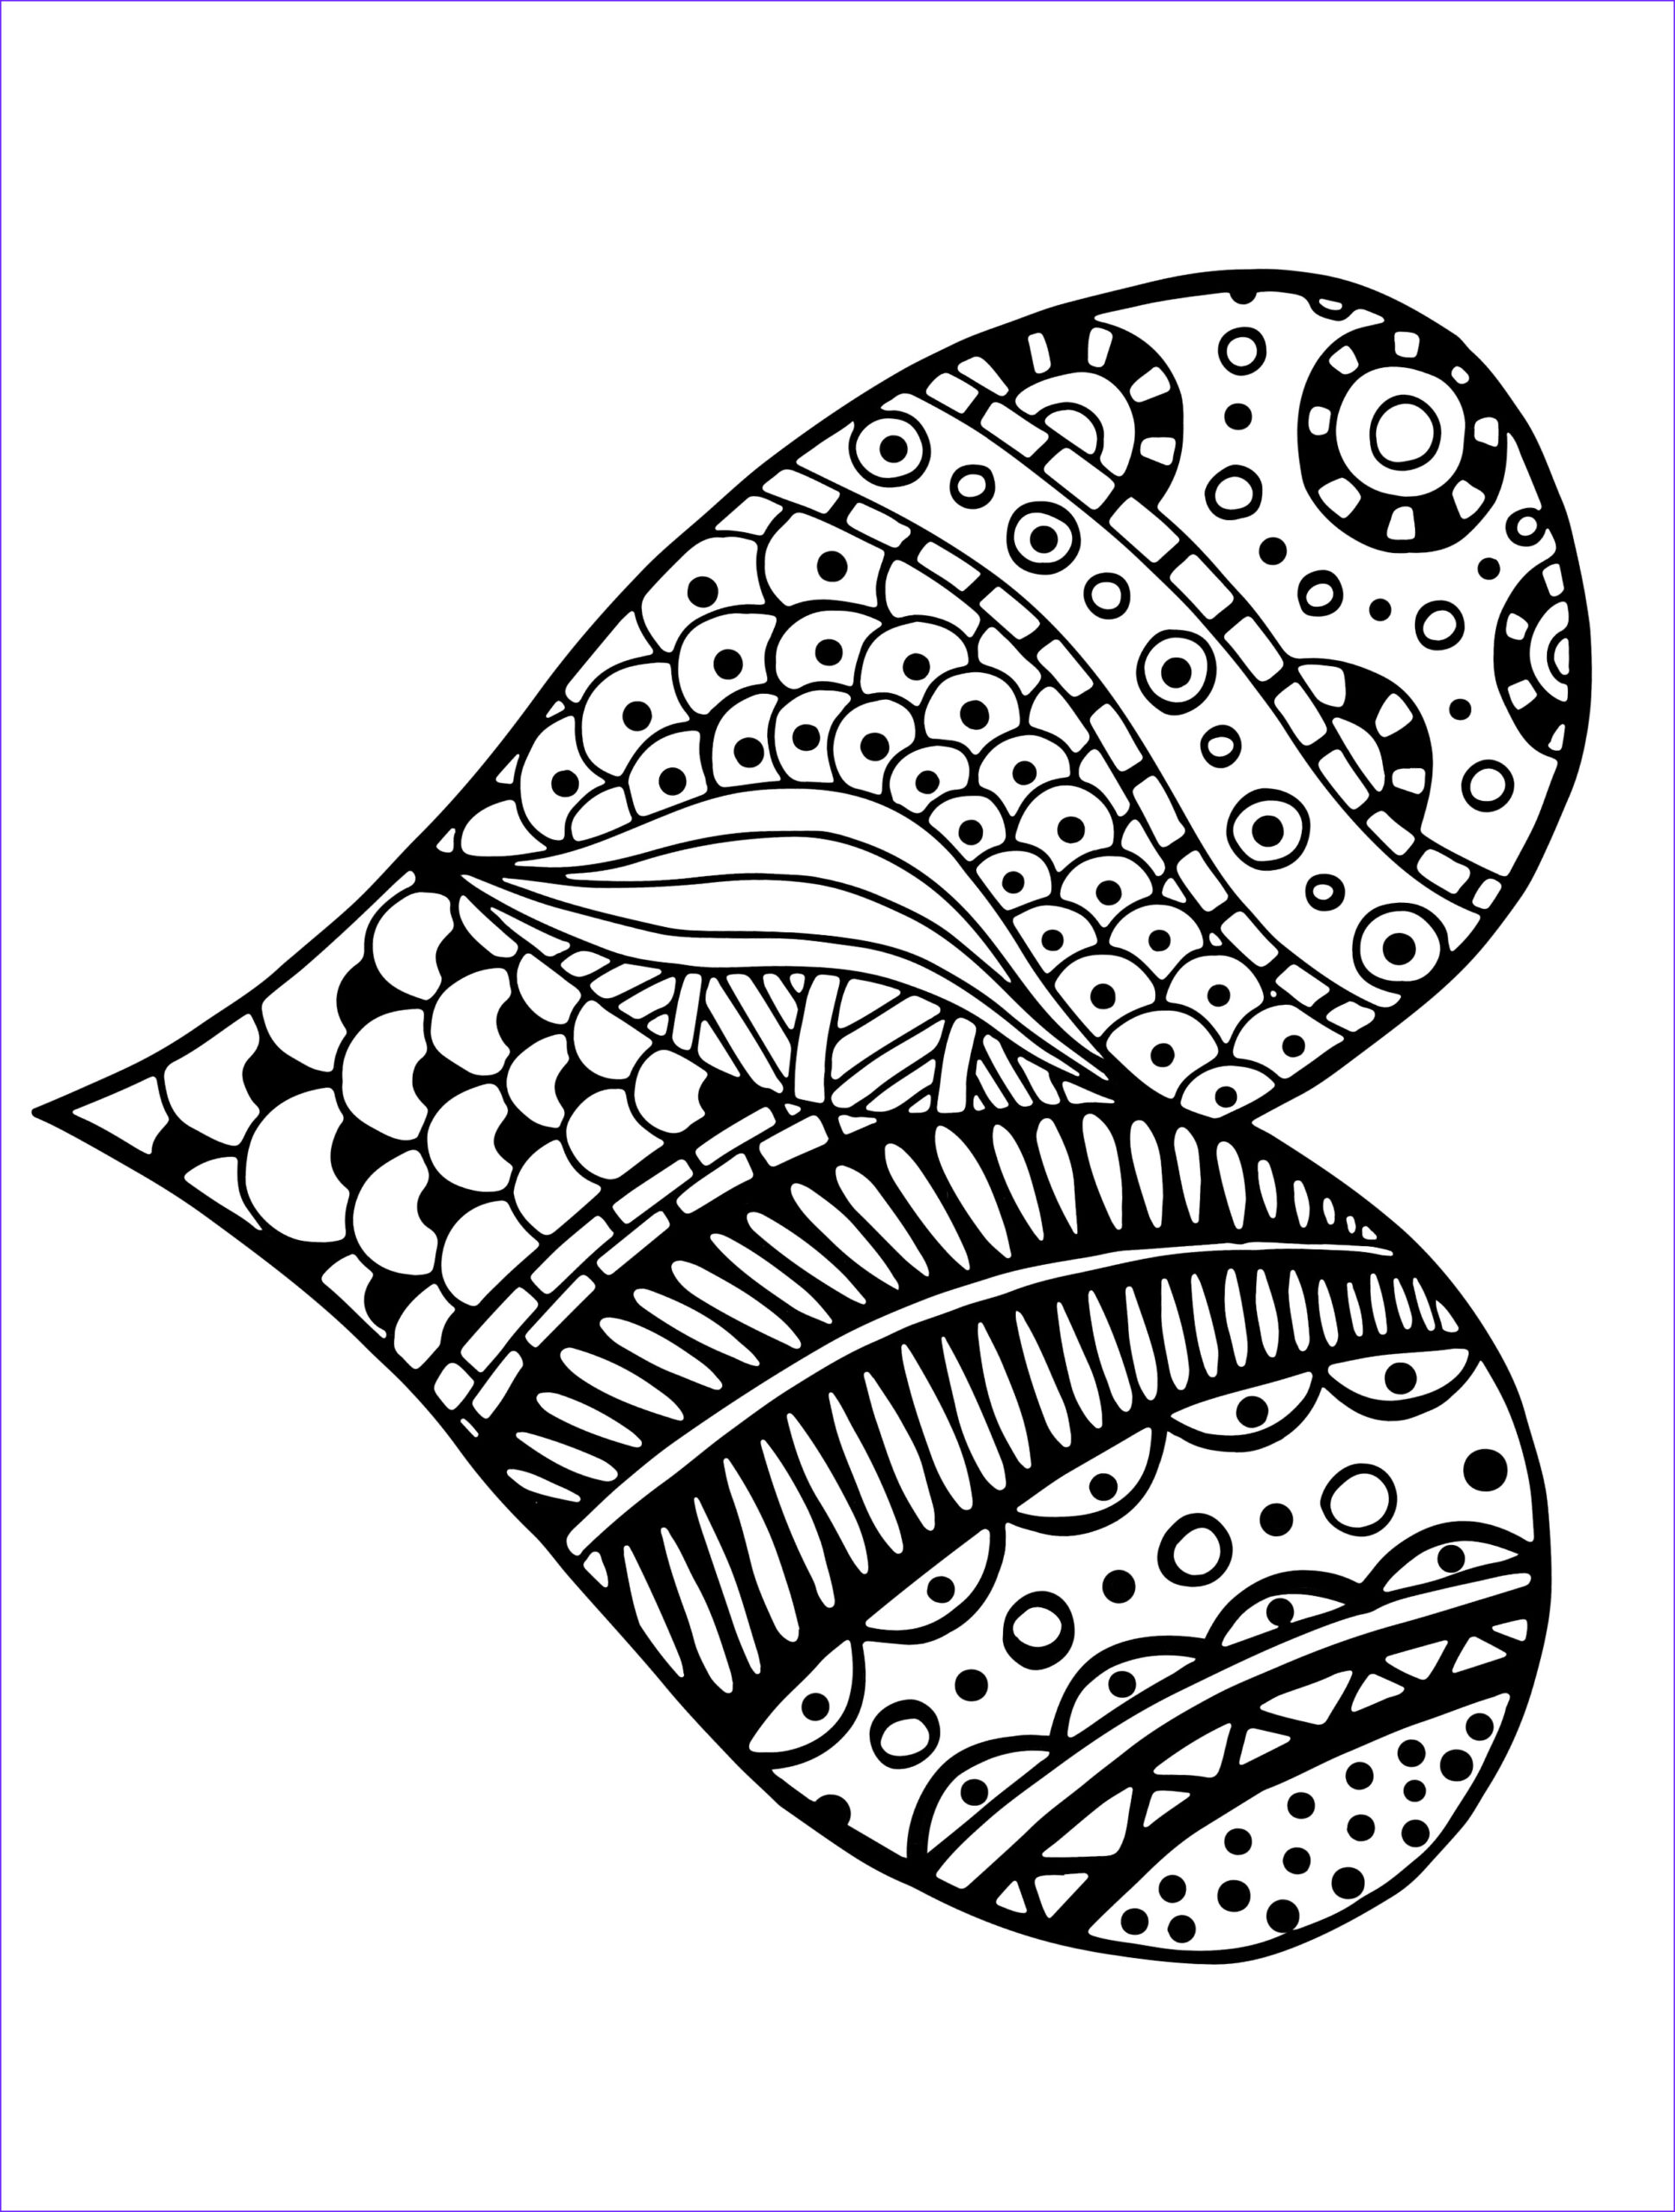 Adult Coloring Pages Free Cool Photos 20 Free Printable Valentines Adult Coloring Pages Nerdy